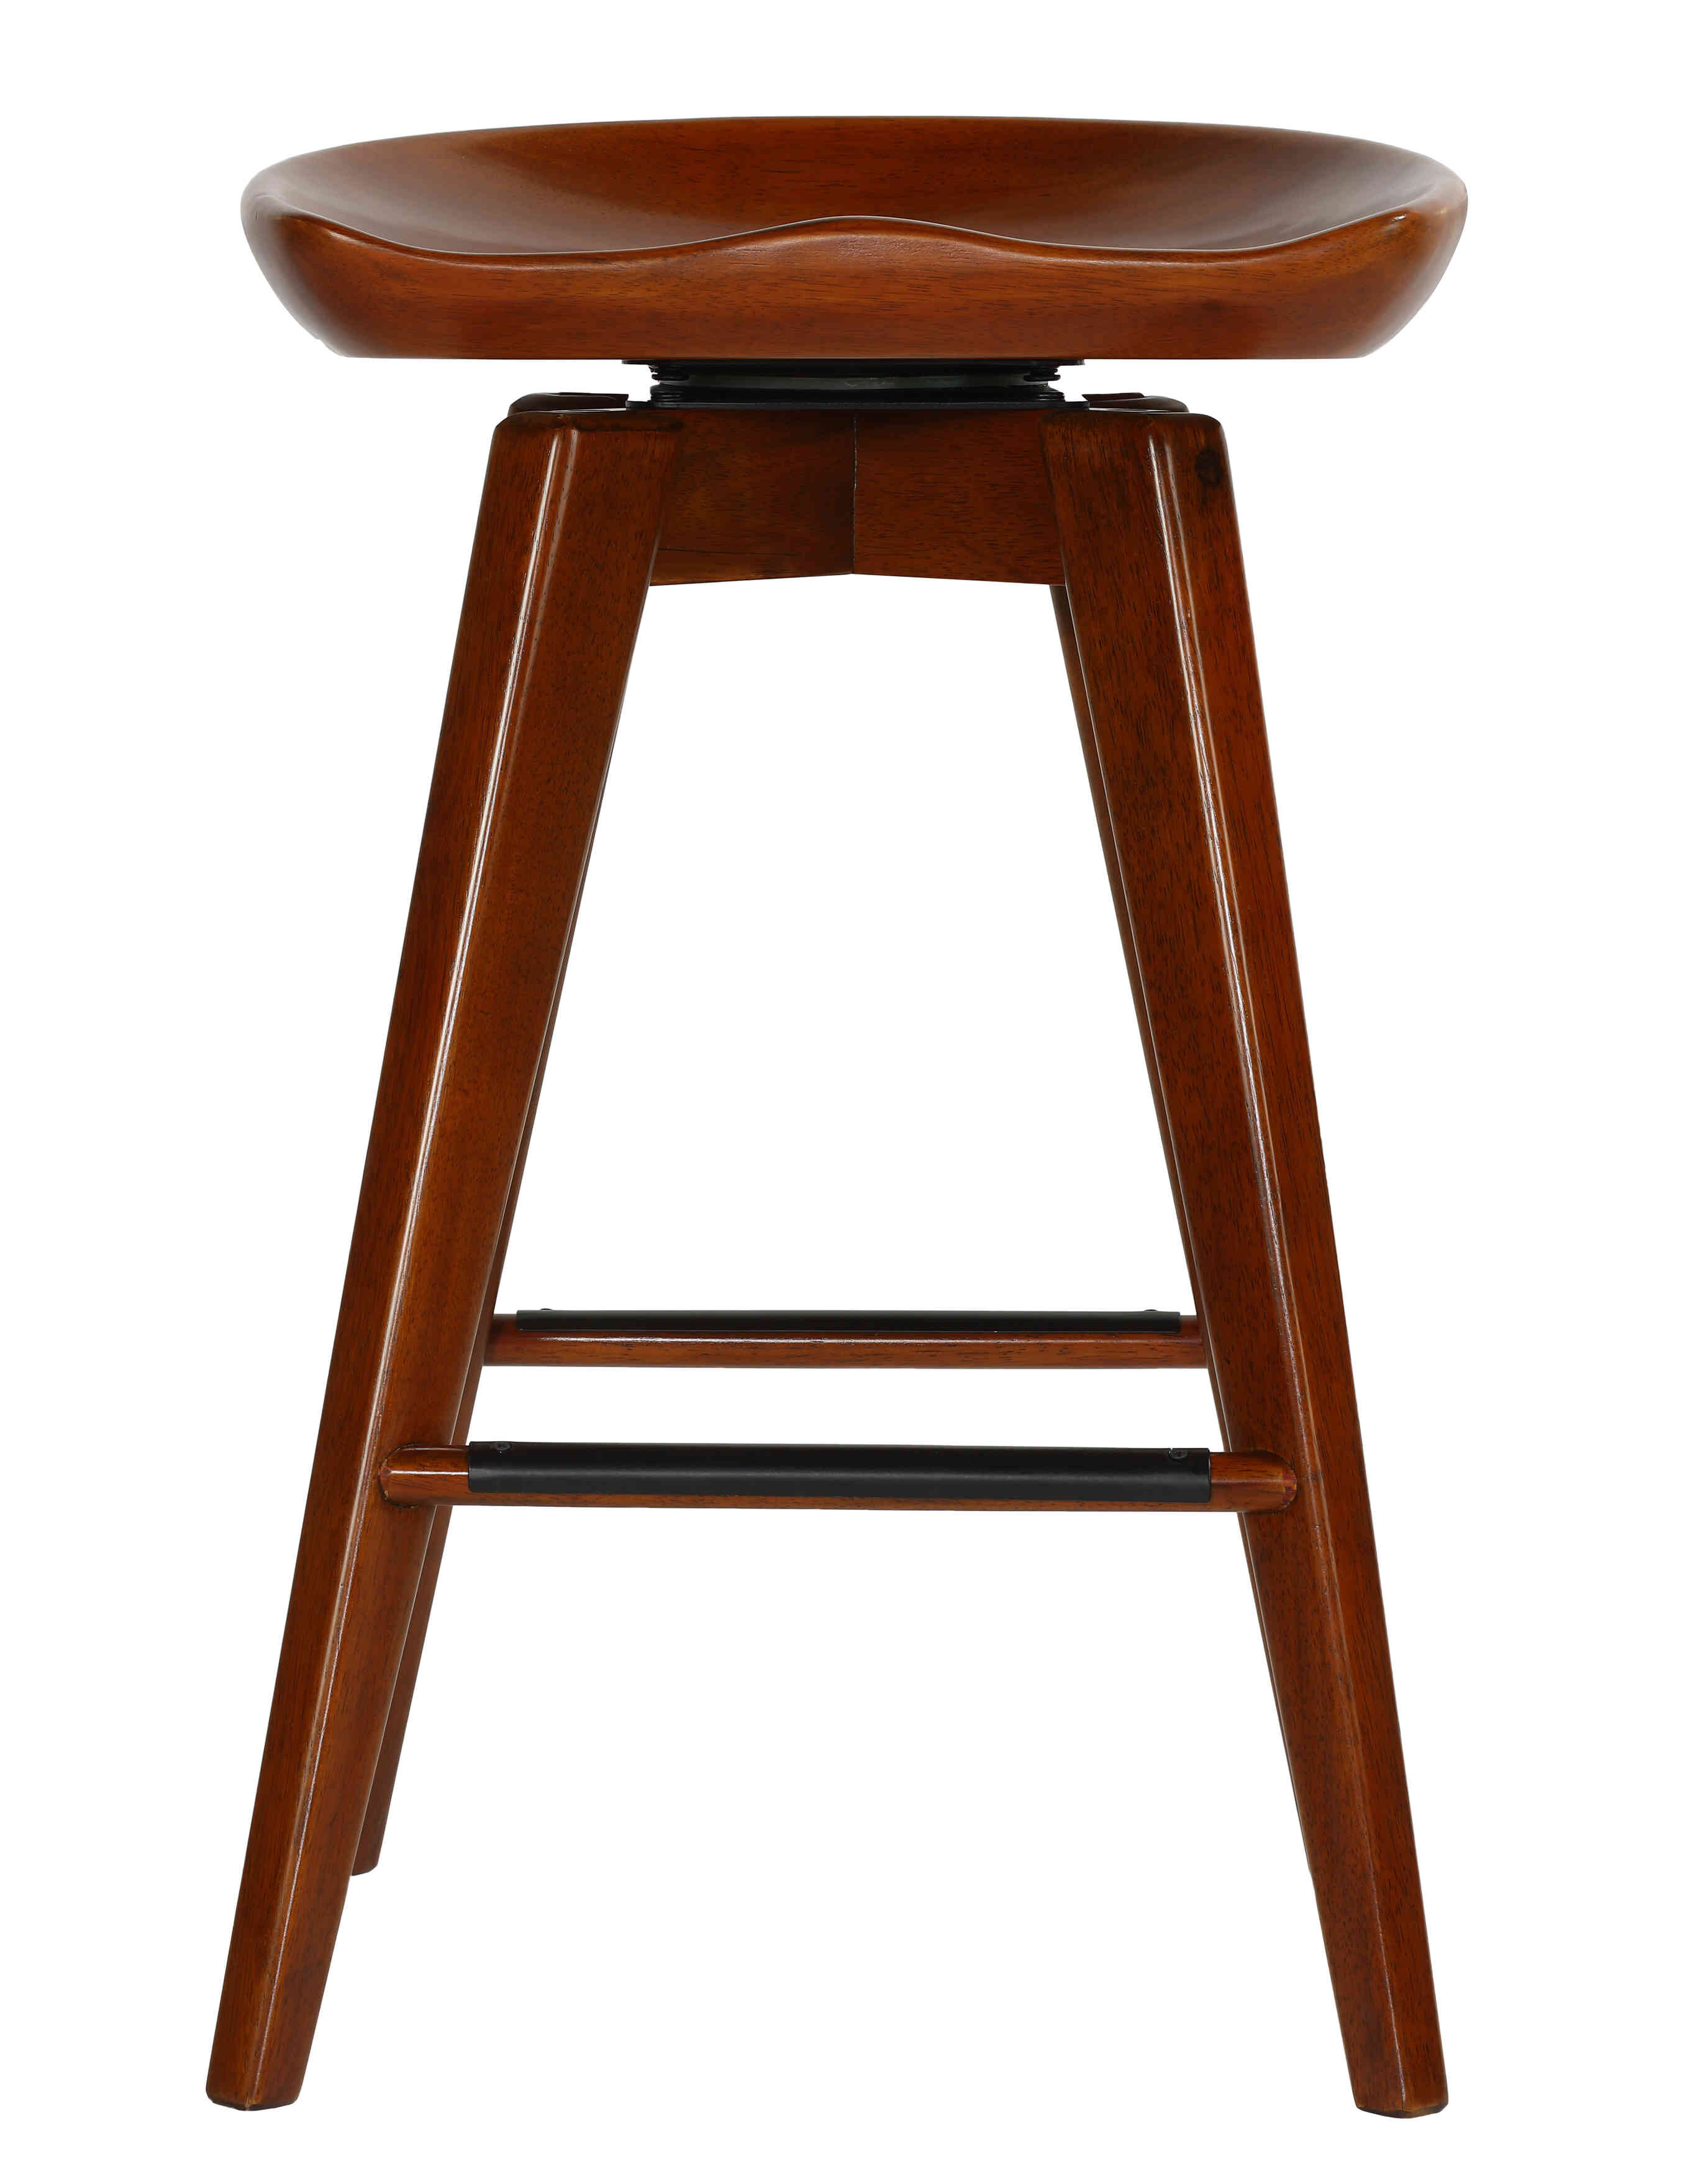 Counter 24 27 Millwood Pines Bar Stools Counter Stools You Ll Love In 2021 Wayfair